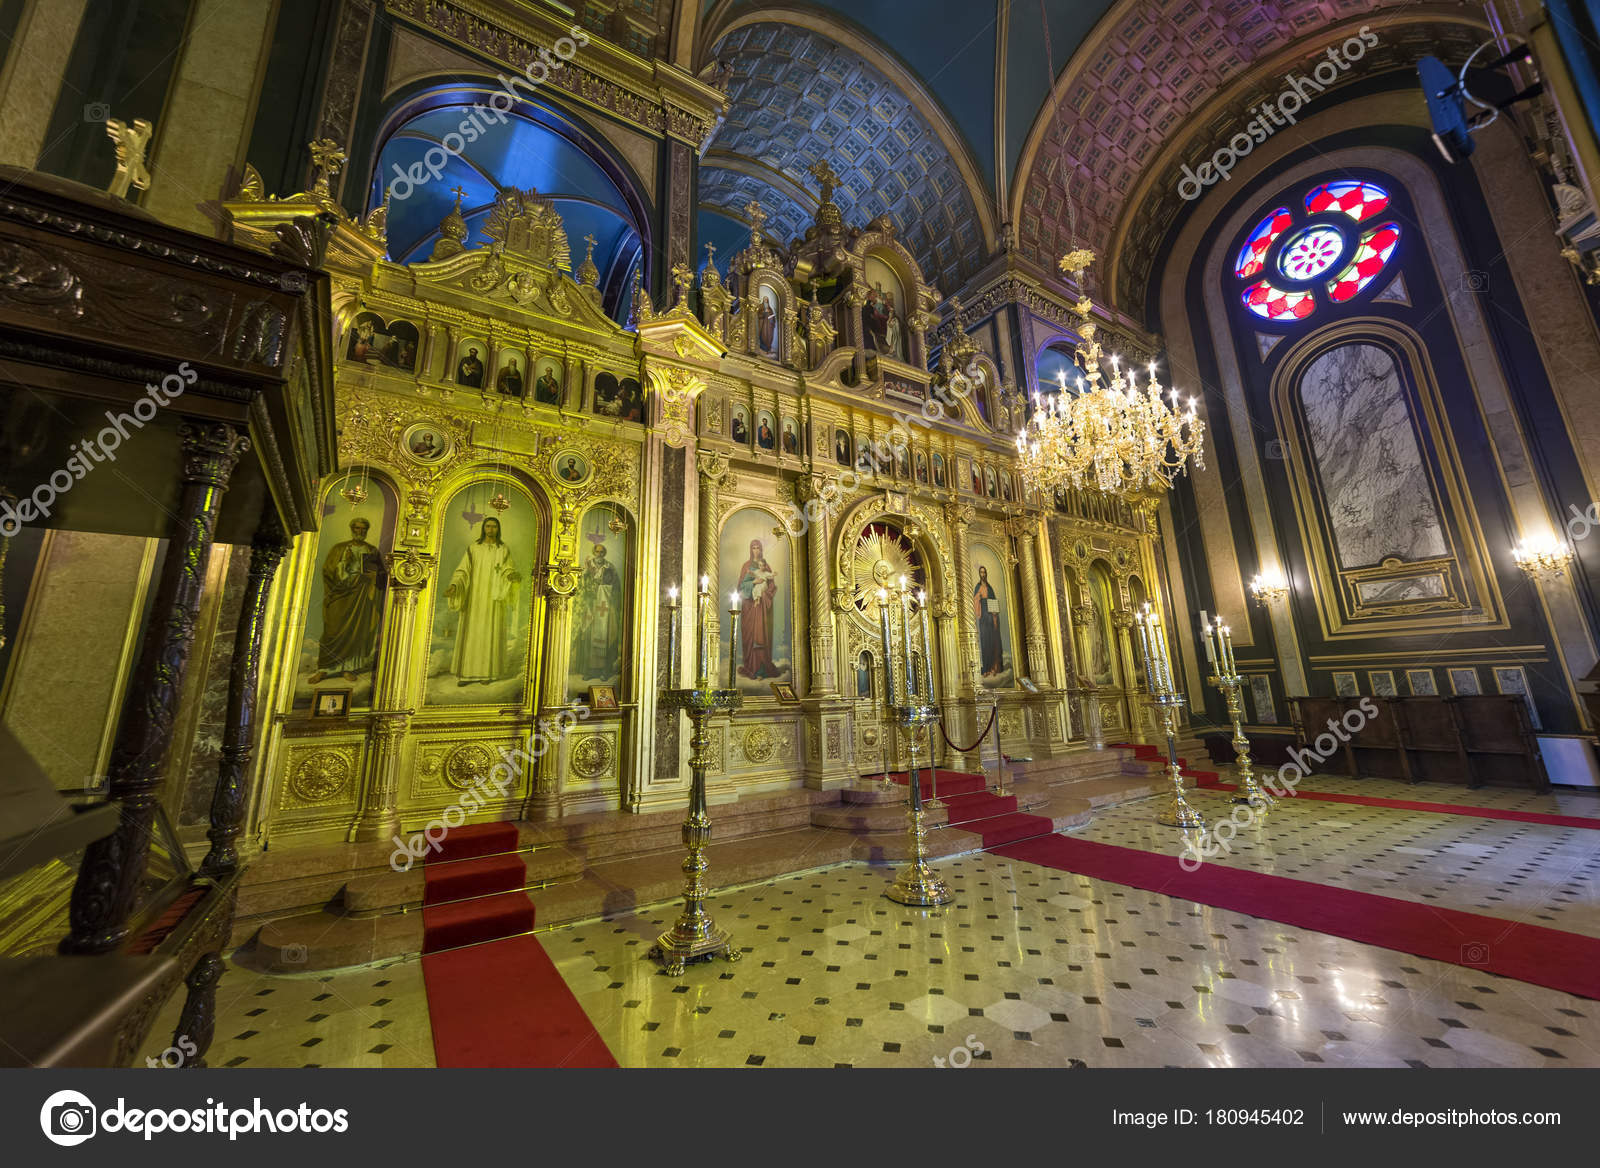 From Bulgarian St Stephen Church An Orthodox In Balat Famous For Being Made Of Prefabricated Cast Iron Elements The Neo Gothic Style